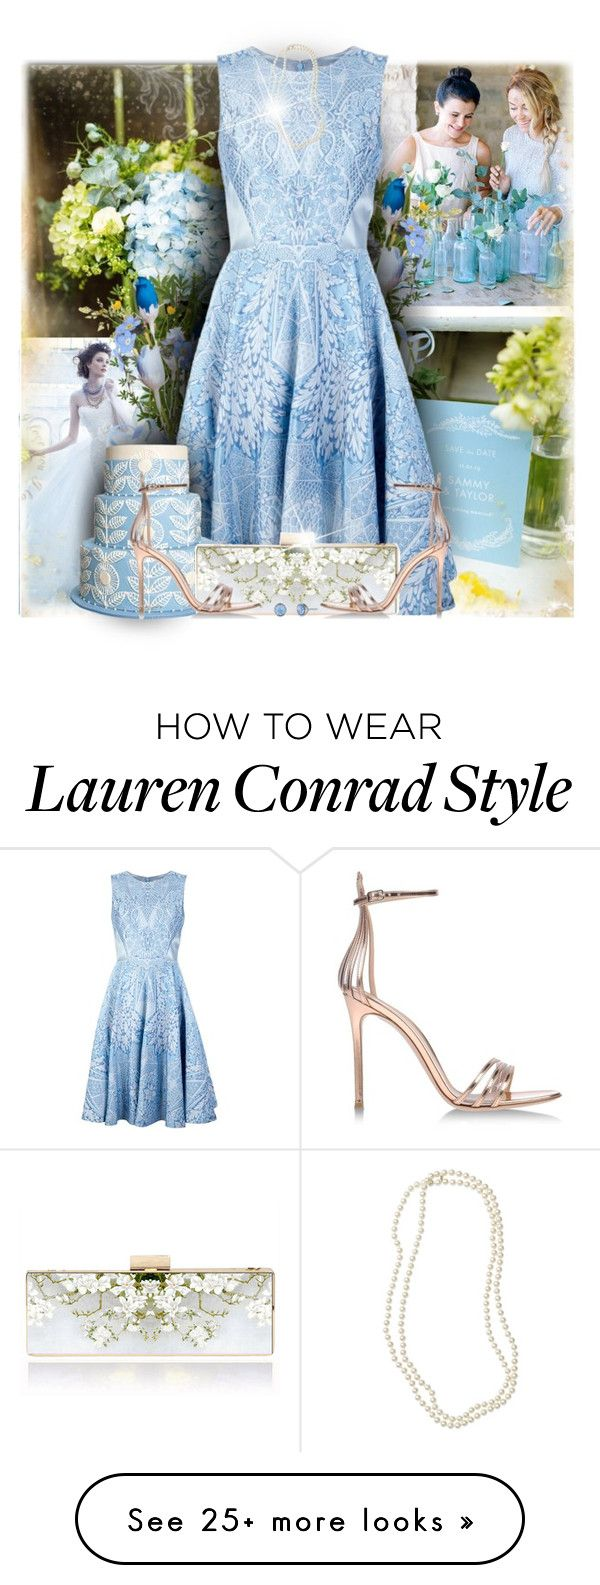 """""""Wedding Guest"""" by daiscat on Polyvore featuring Lauren Conrad, Lazaro, Temperley London, Gianvito Rossi, Lonna & Lilly and Nordstrom"""